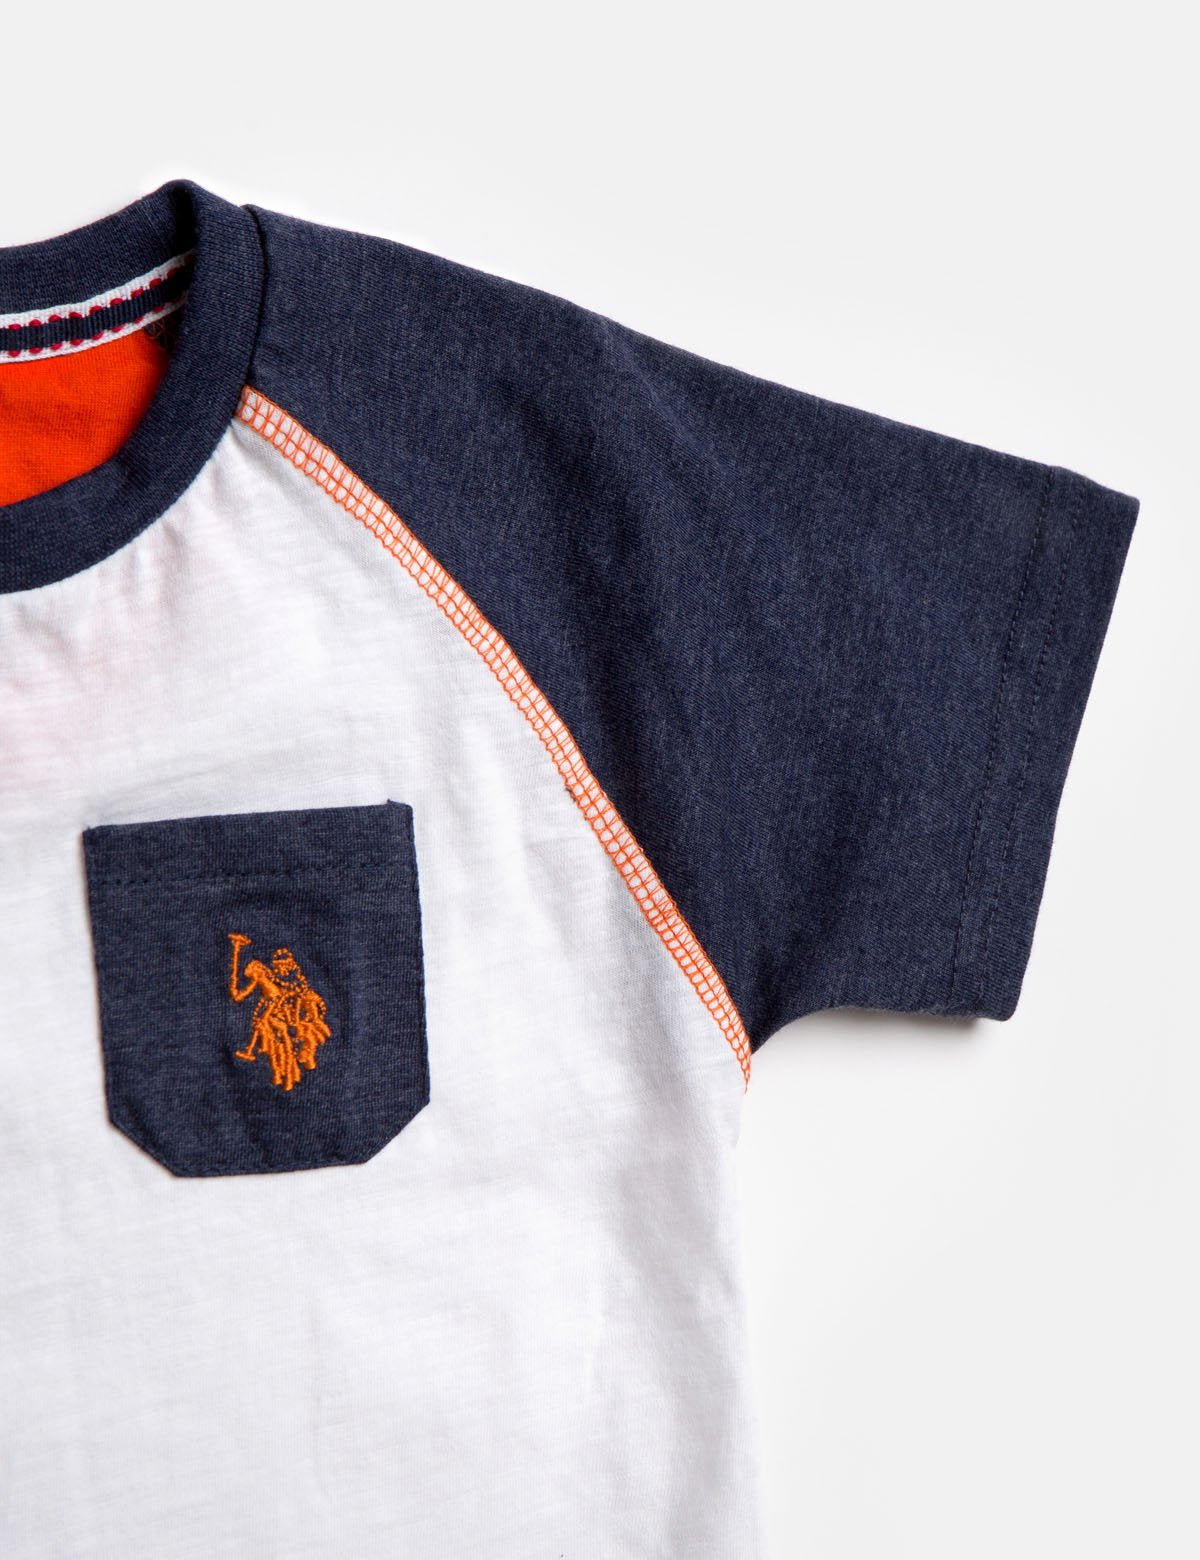 TODDLER BOYS 2 PIECE SET: TEE & SHORTS - U.S. Polo Assn.